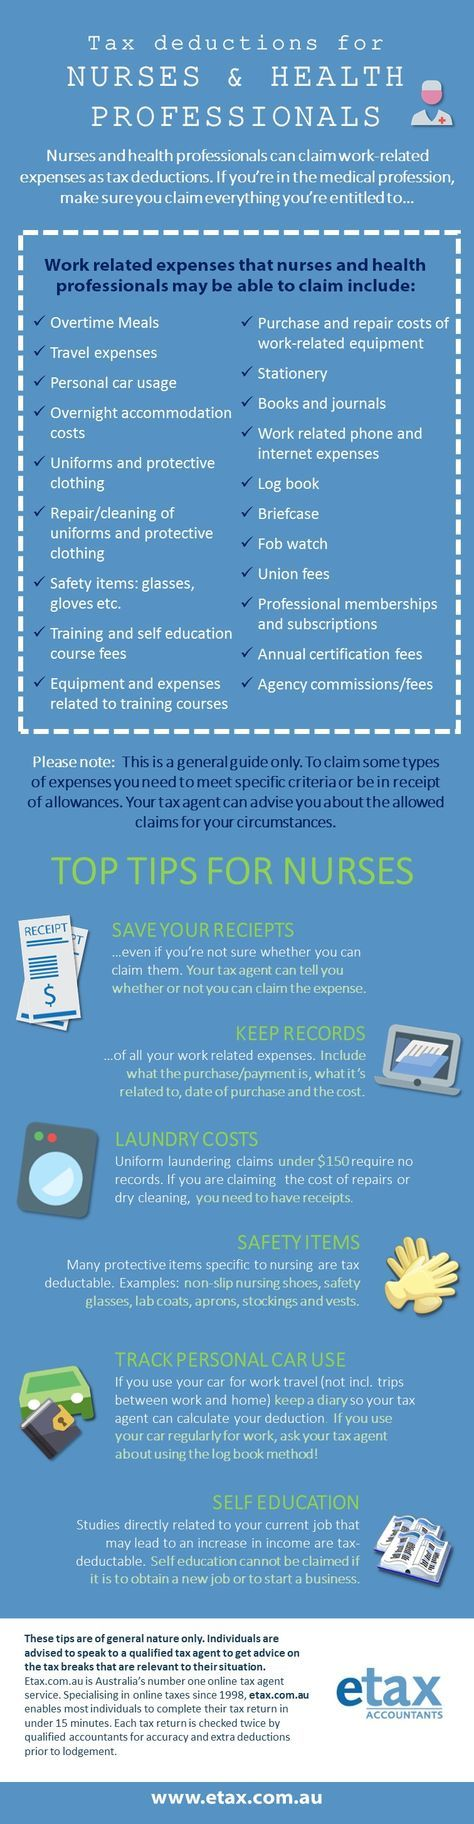 nurses tax deductions infographic